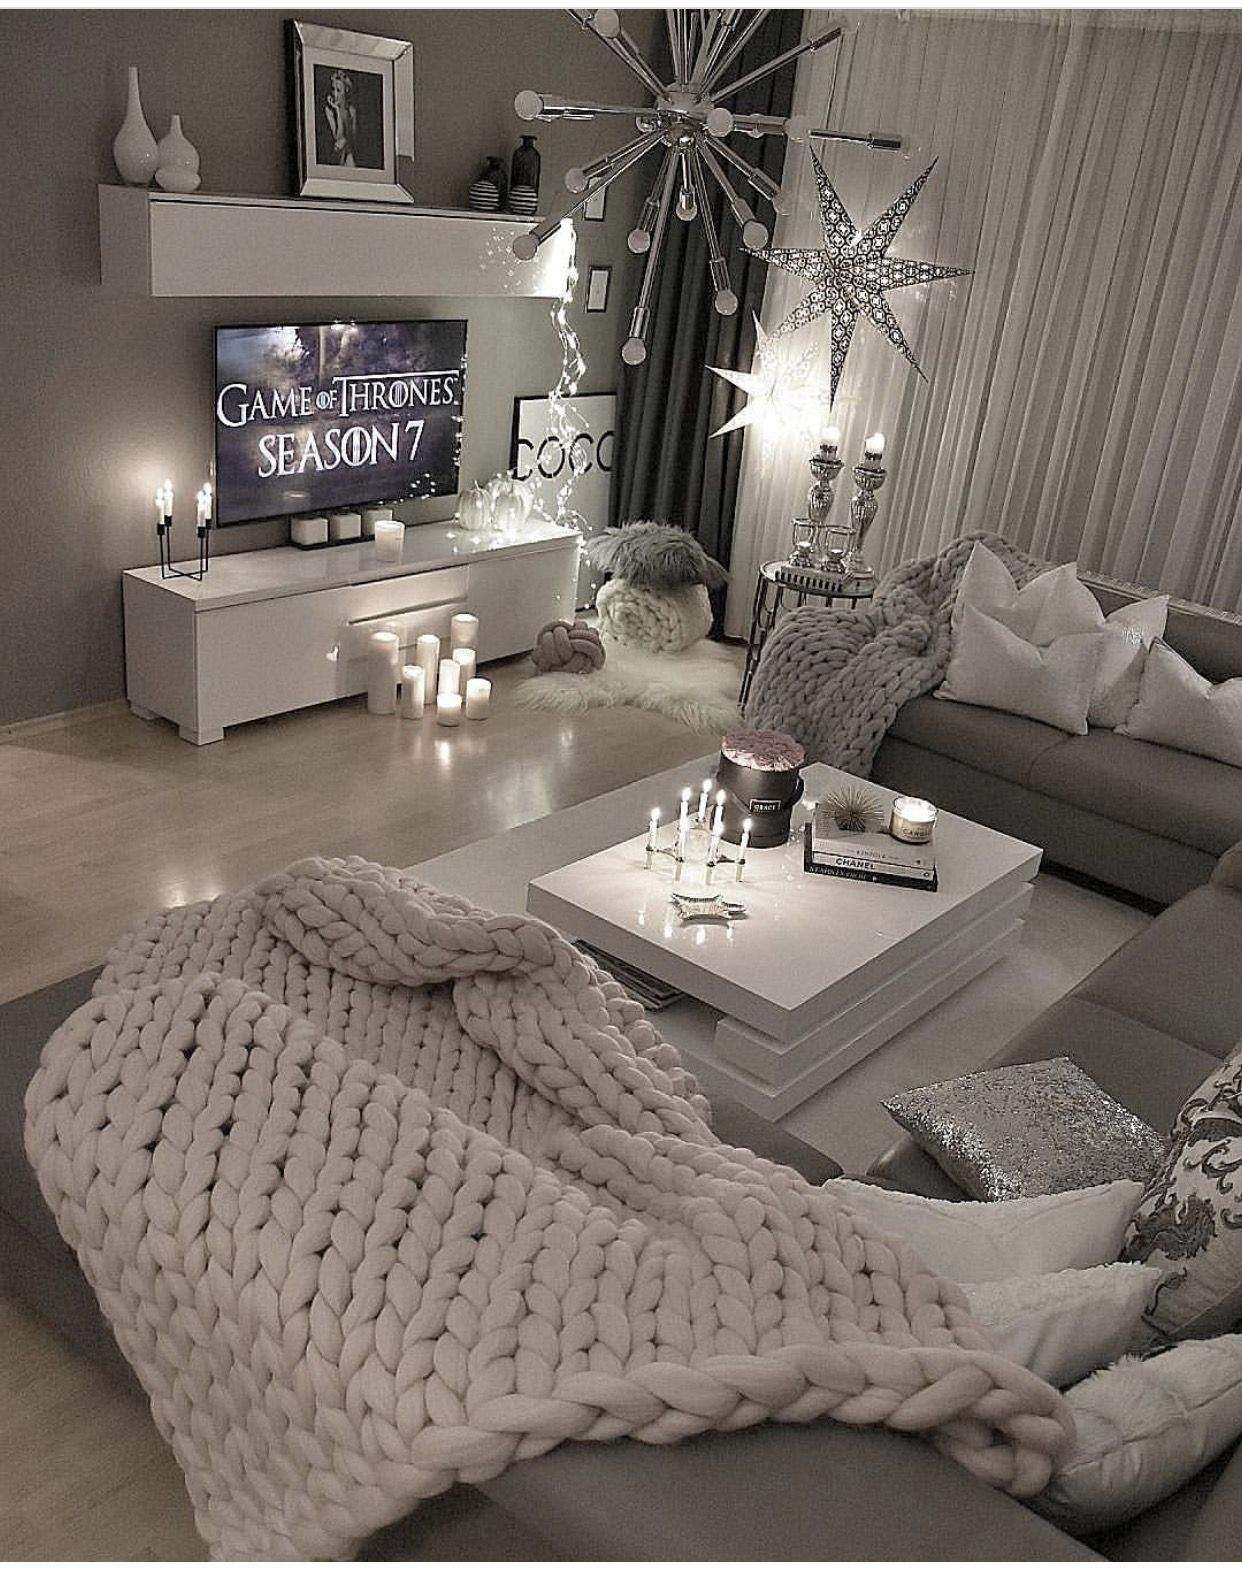 Pin By Matrina Winters On Living Room Decor Living Room Designs Apartment Decor Room Decor